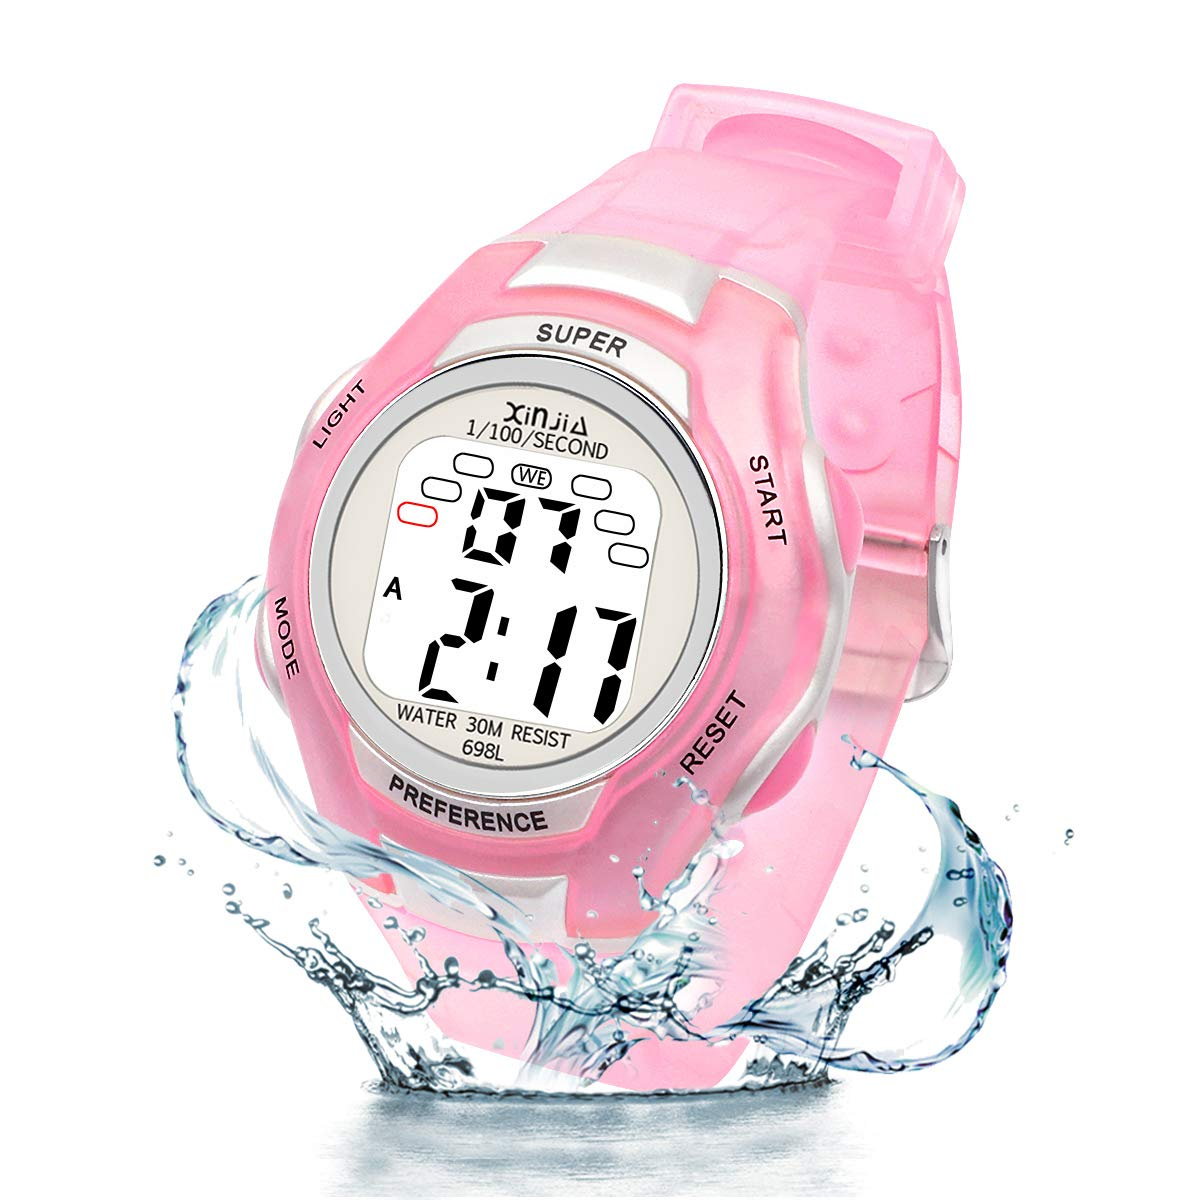 Digital Watches for Kids, 7 Colors LED Light Boys Girls Watch Waterproof Sports Watches Digital Watch for Age 2~14 Children Gift (Pink-1) by Juboos